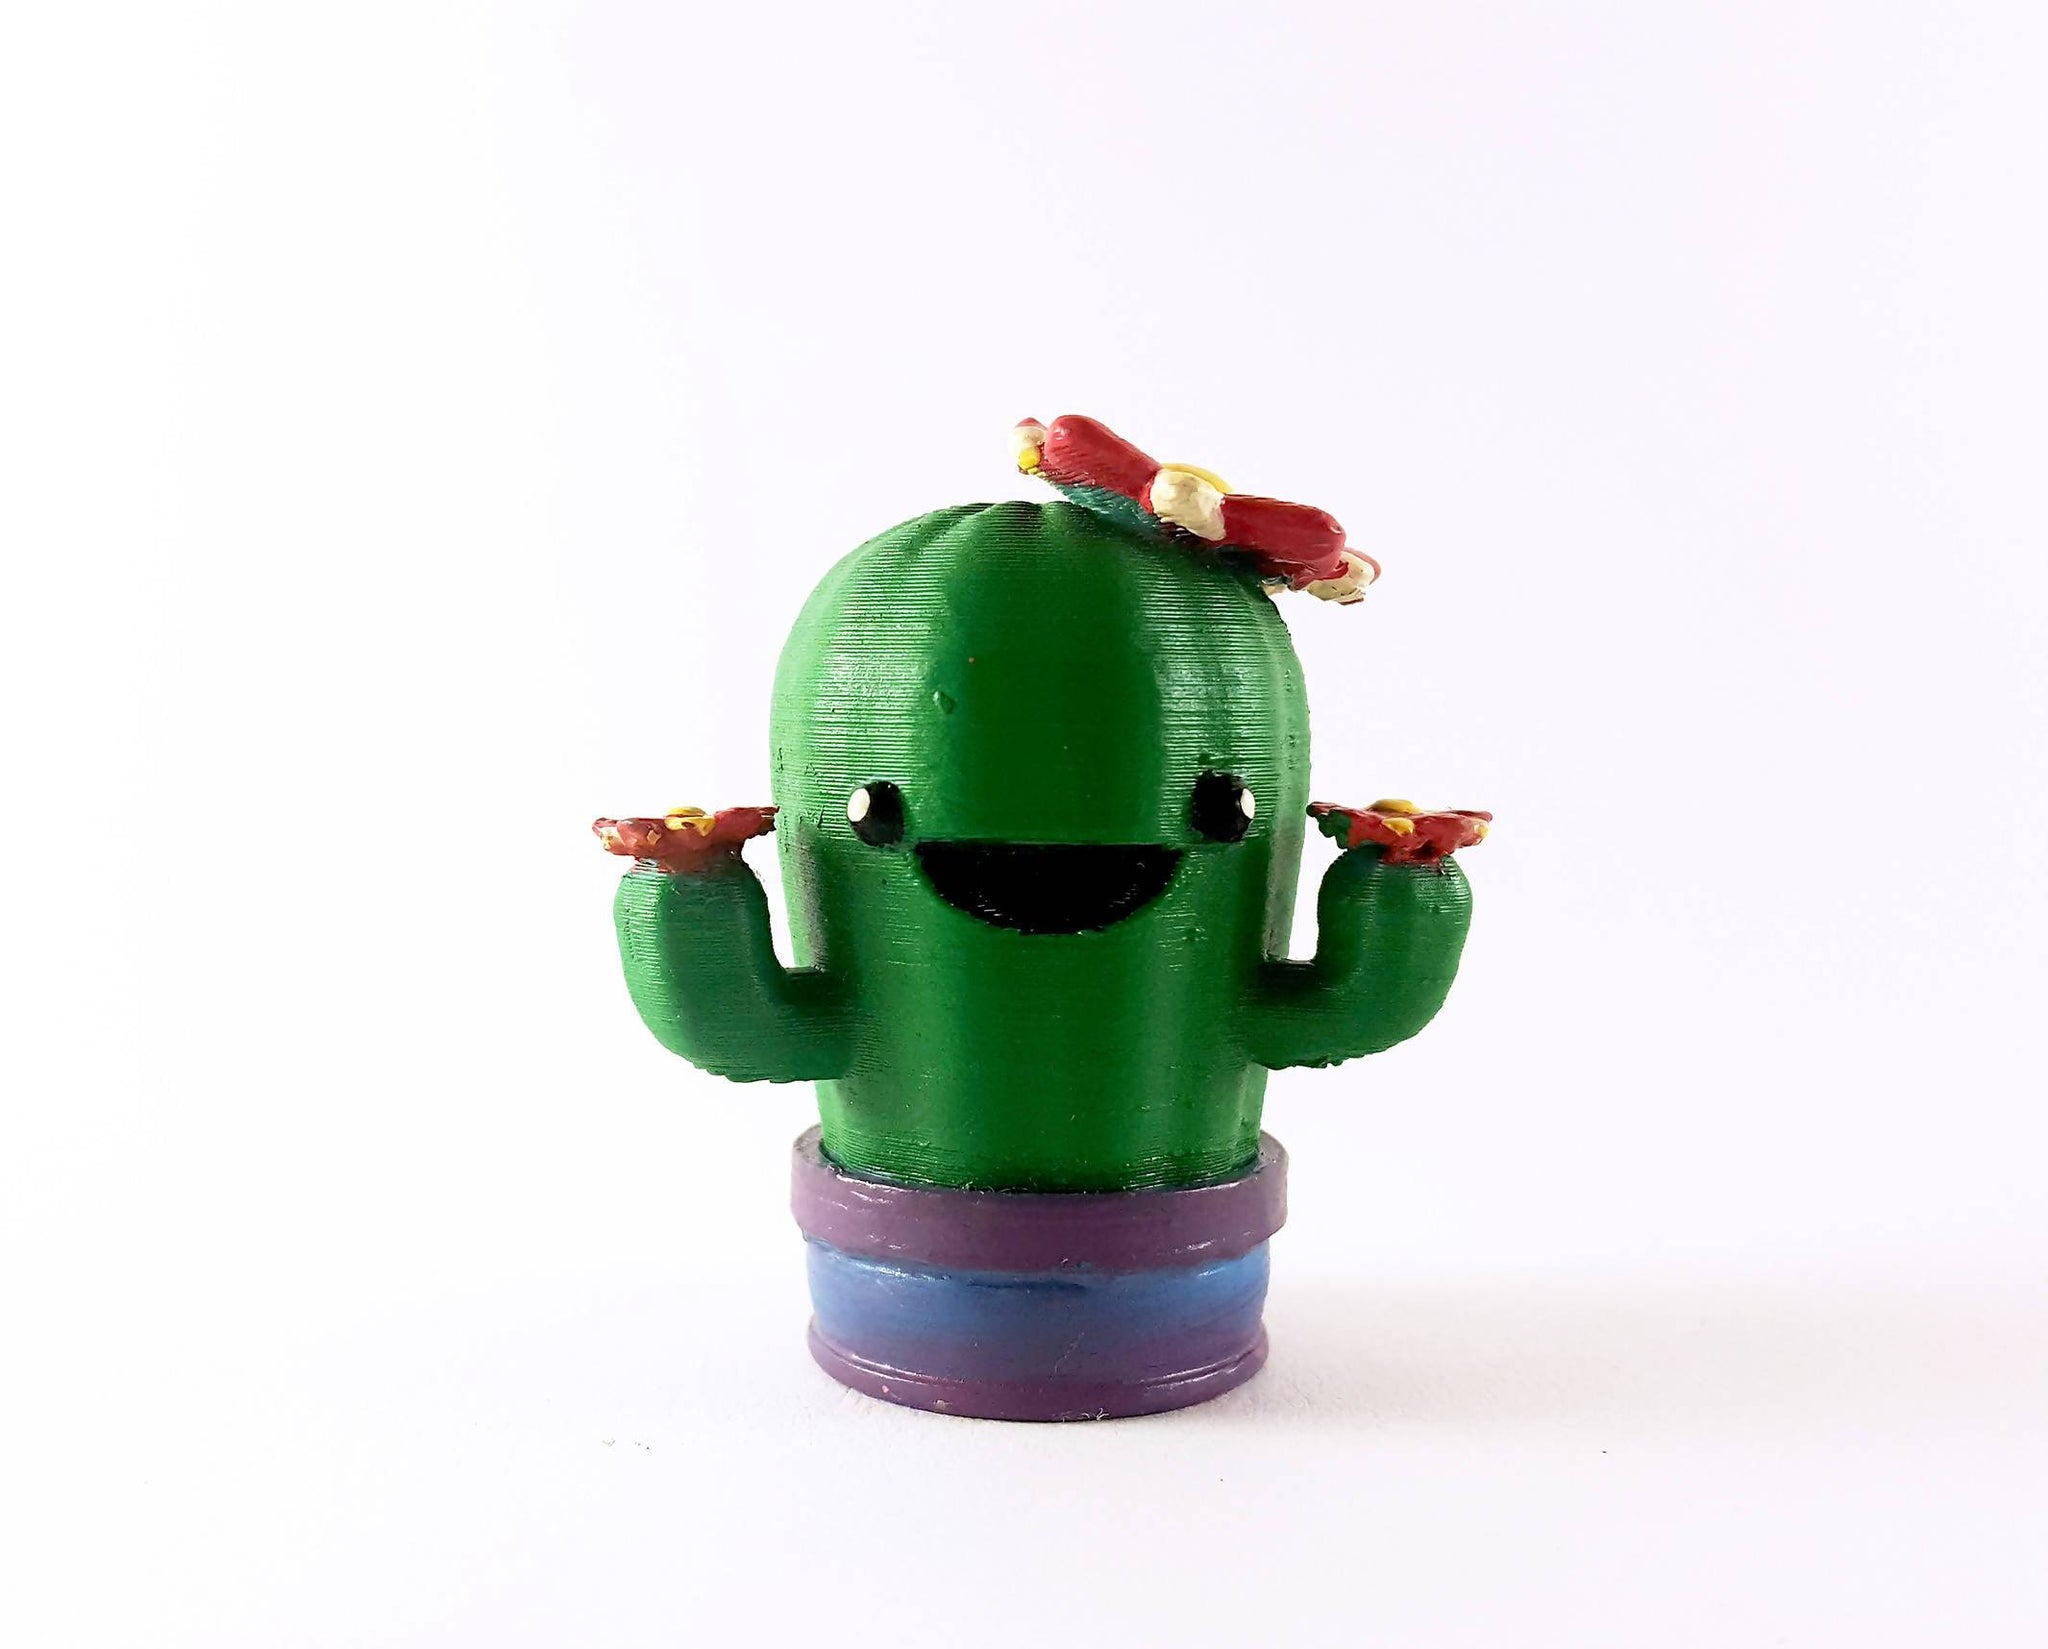 Super happy cactus desk buddy - Cute 3d printed figurine - Hand painted figure